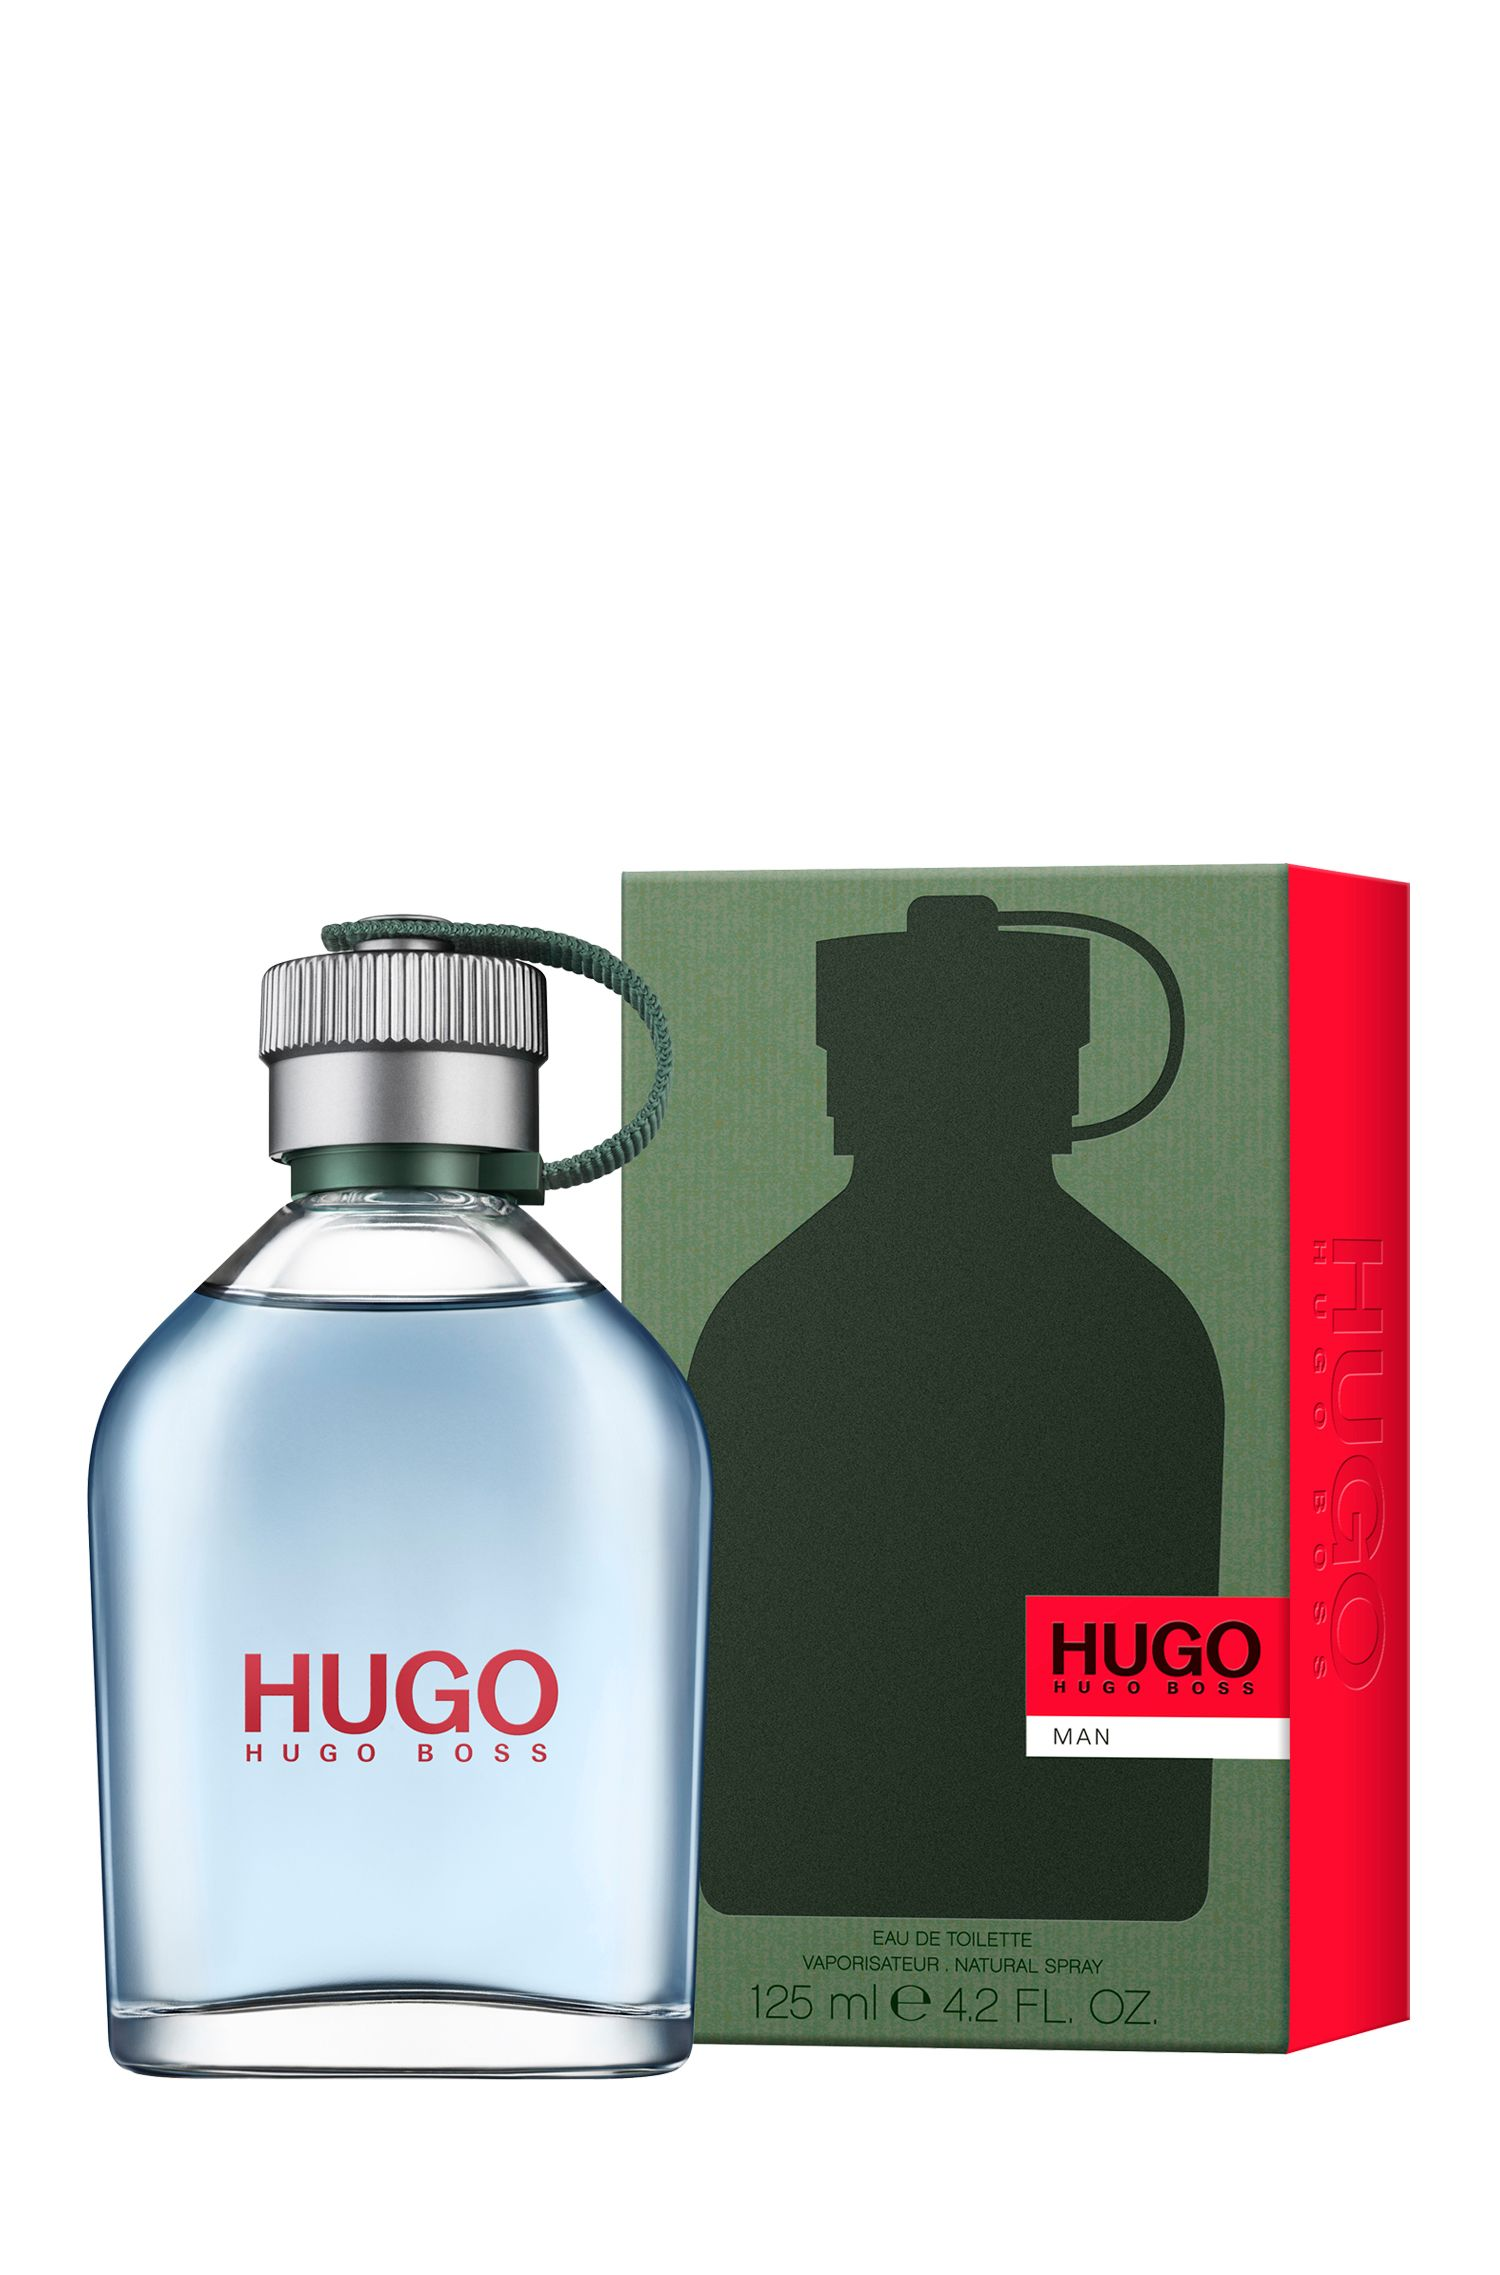 Eau de toilette HUGO Man de 125 ml